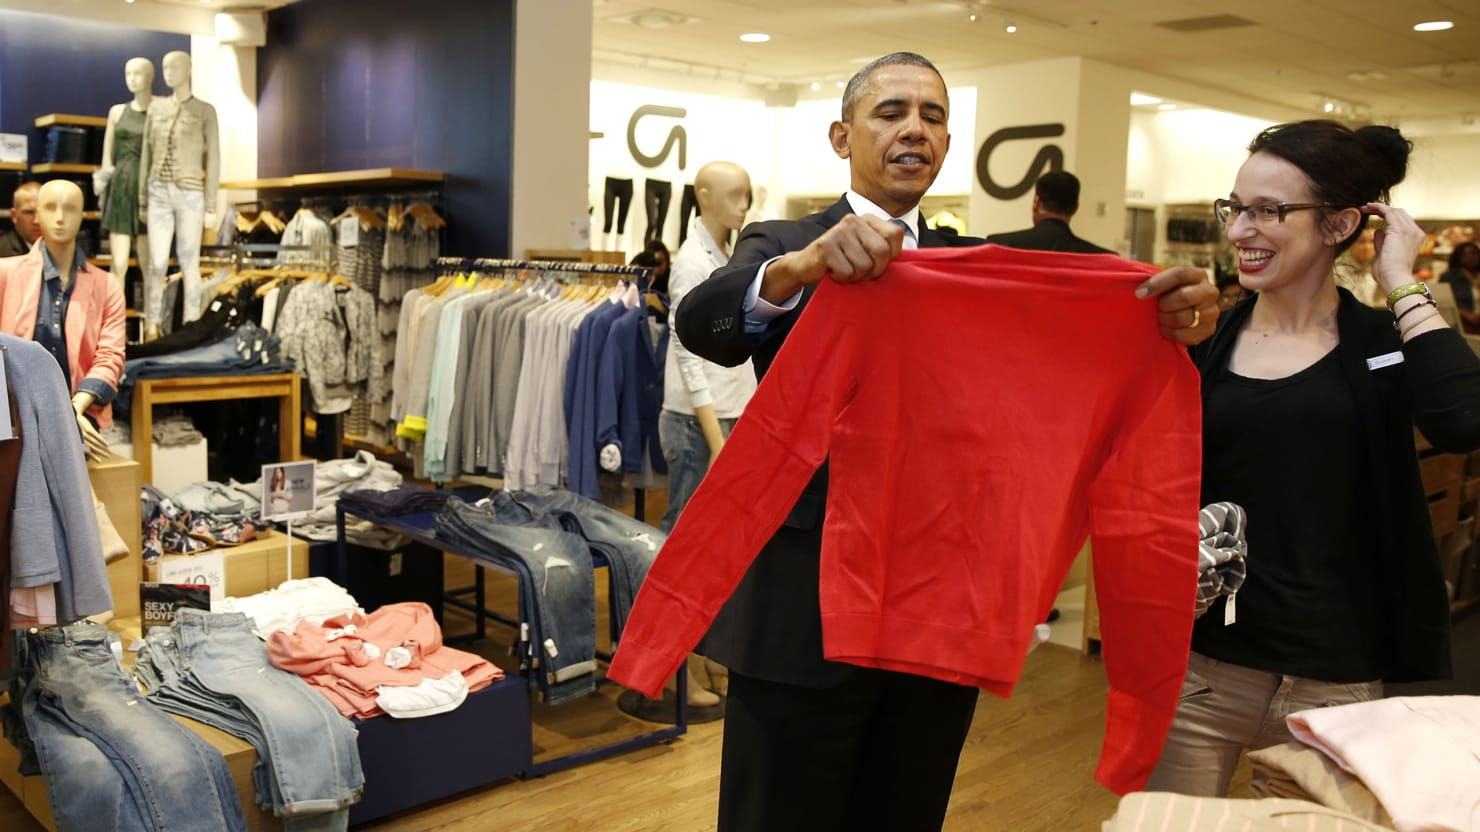 President Obama Shops at The Gap; Vanessa Friedman Joins 'The New York Times'